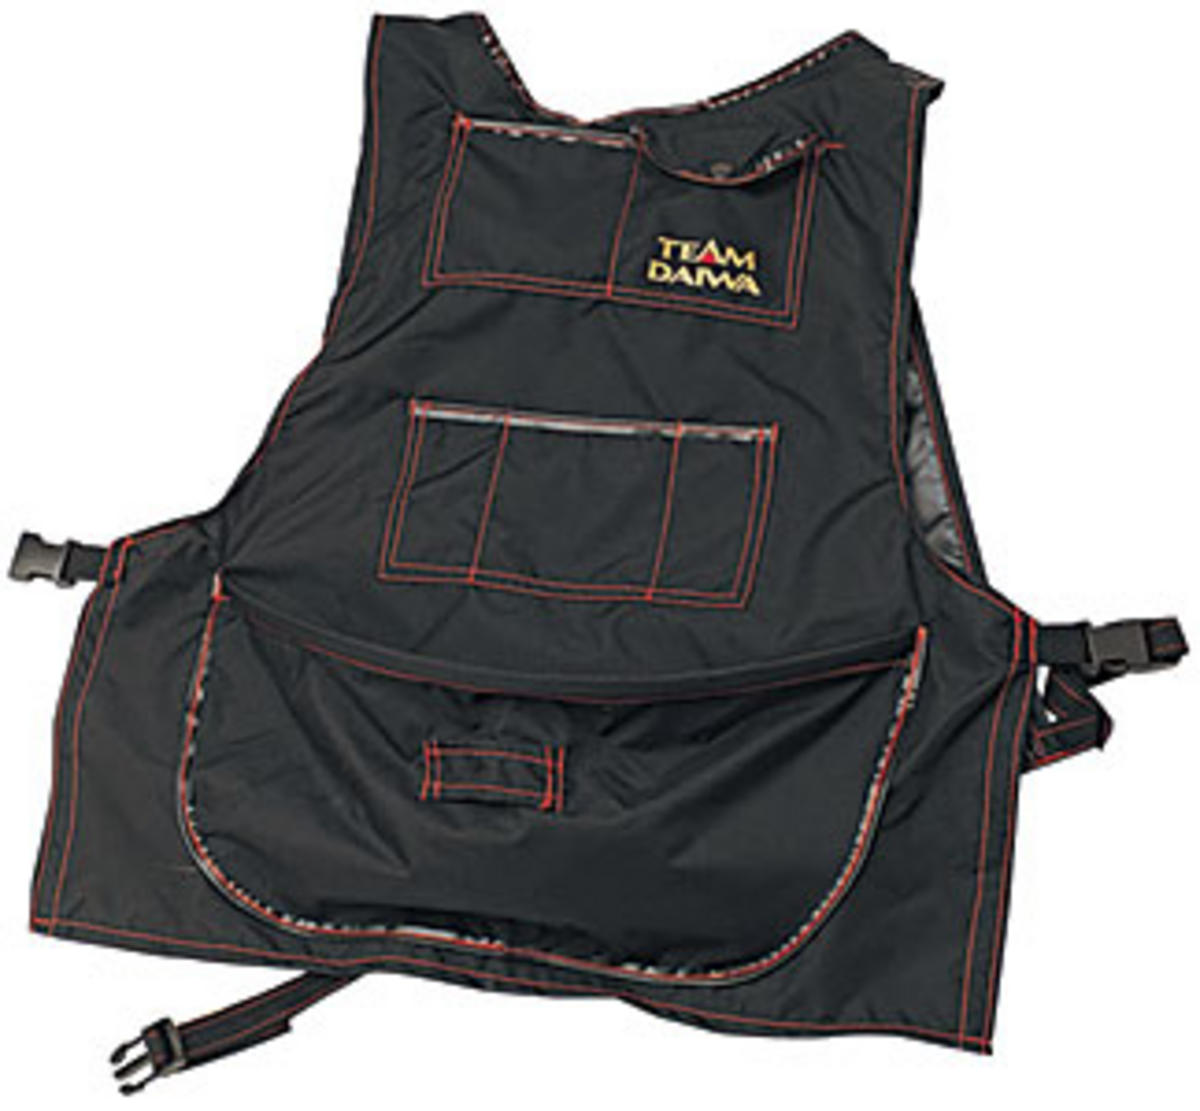 DAIWA SUPERMATCHMAN APRON Model No SMA1